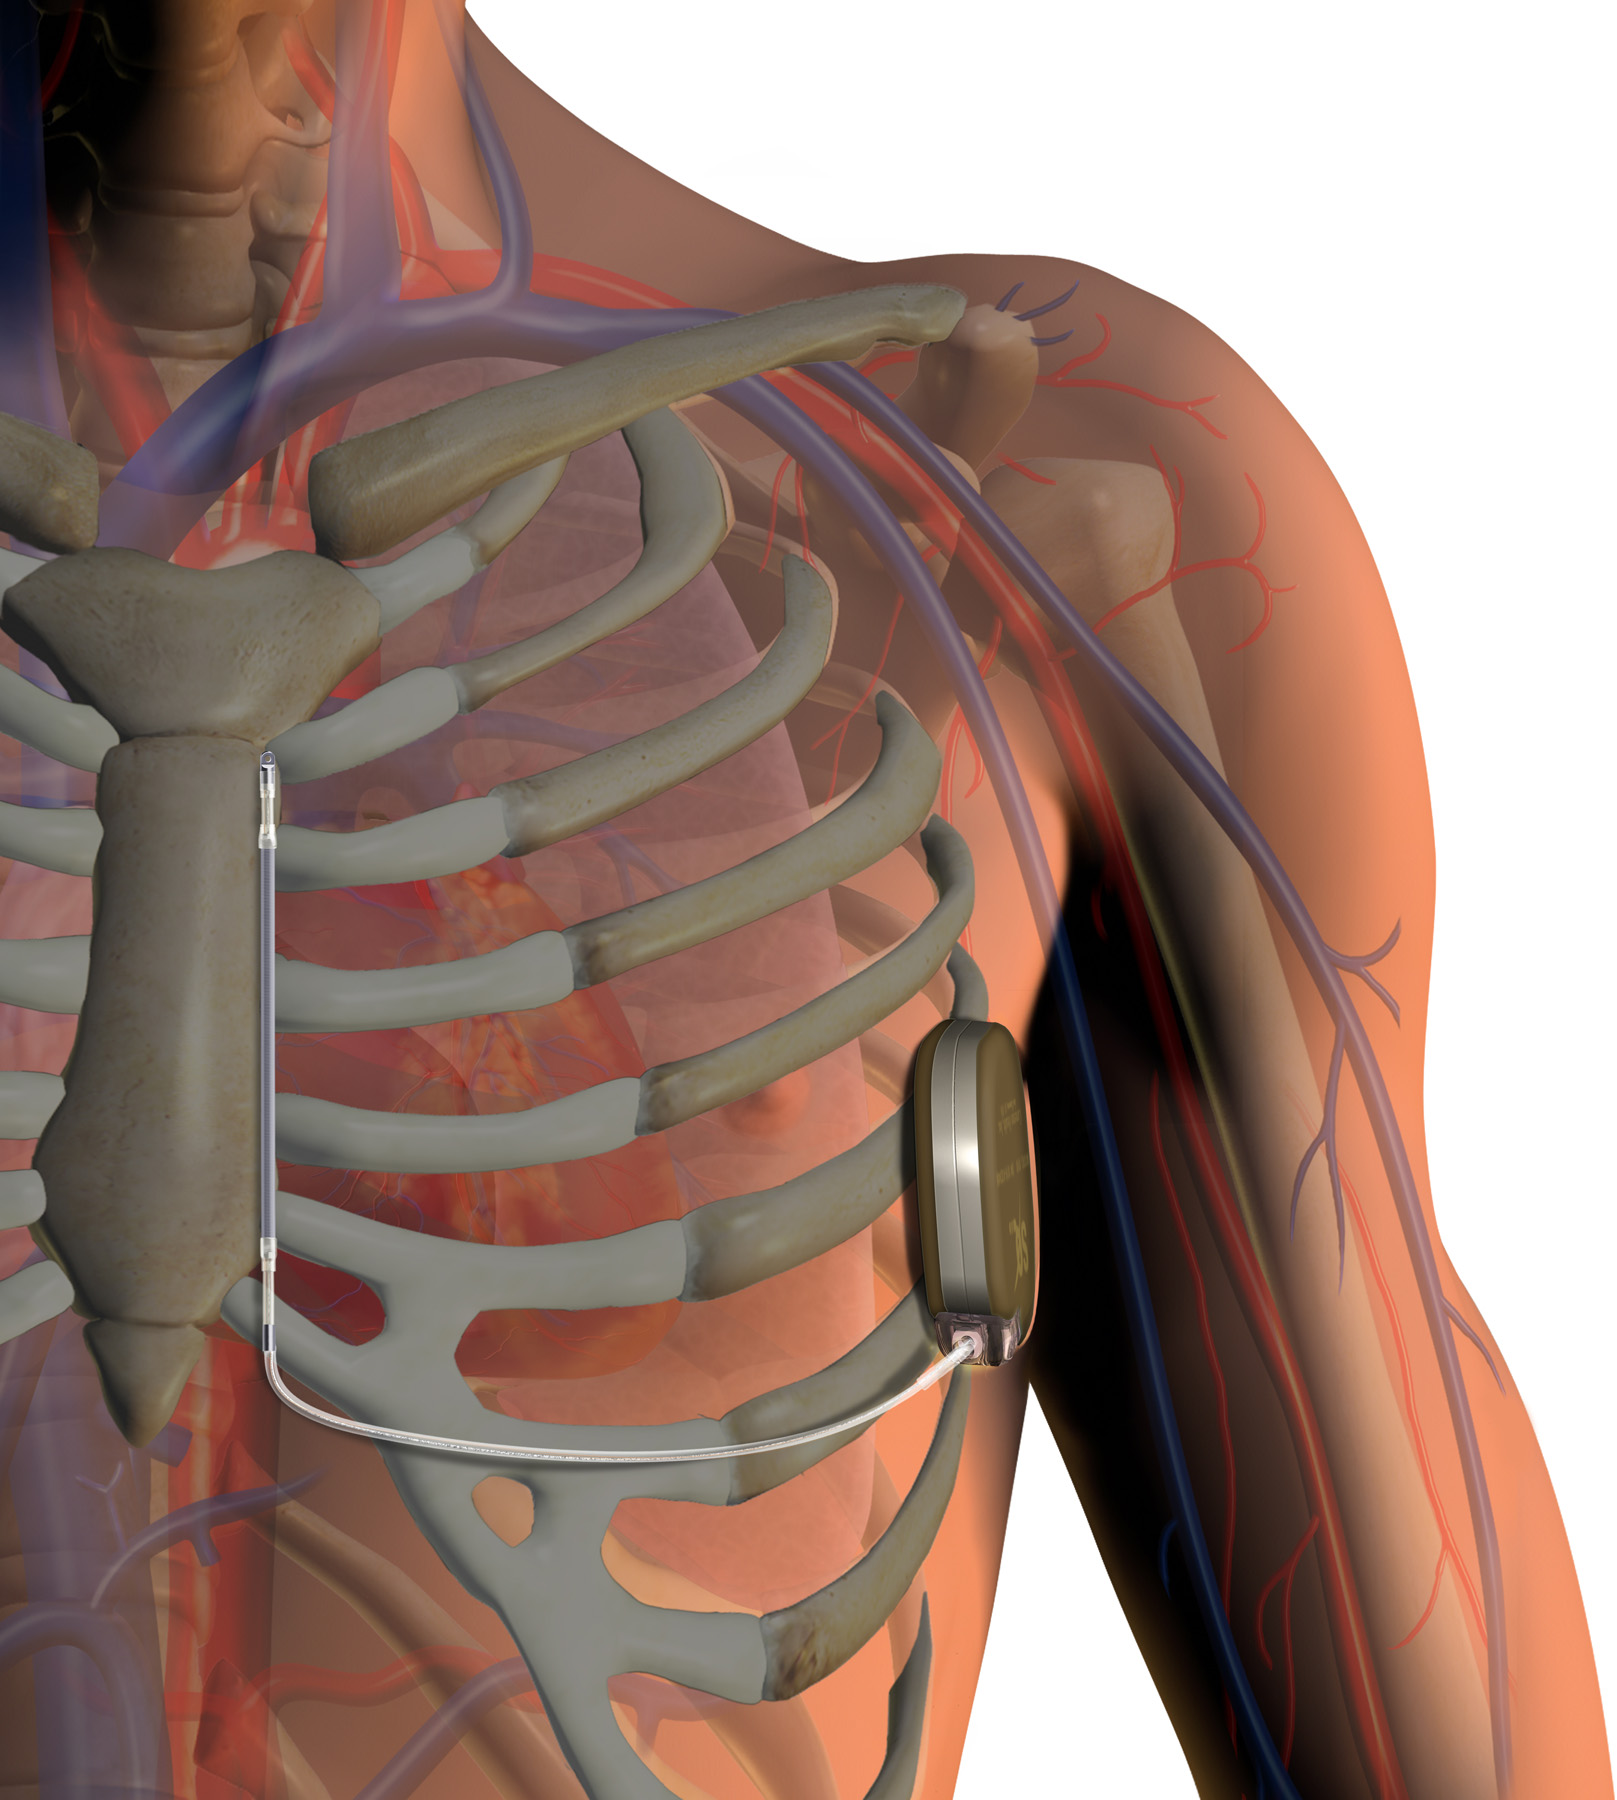 Advances In Implantable Cardioverter Defibrillator Icd Technology